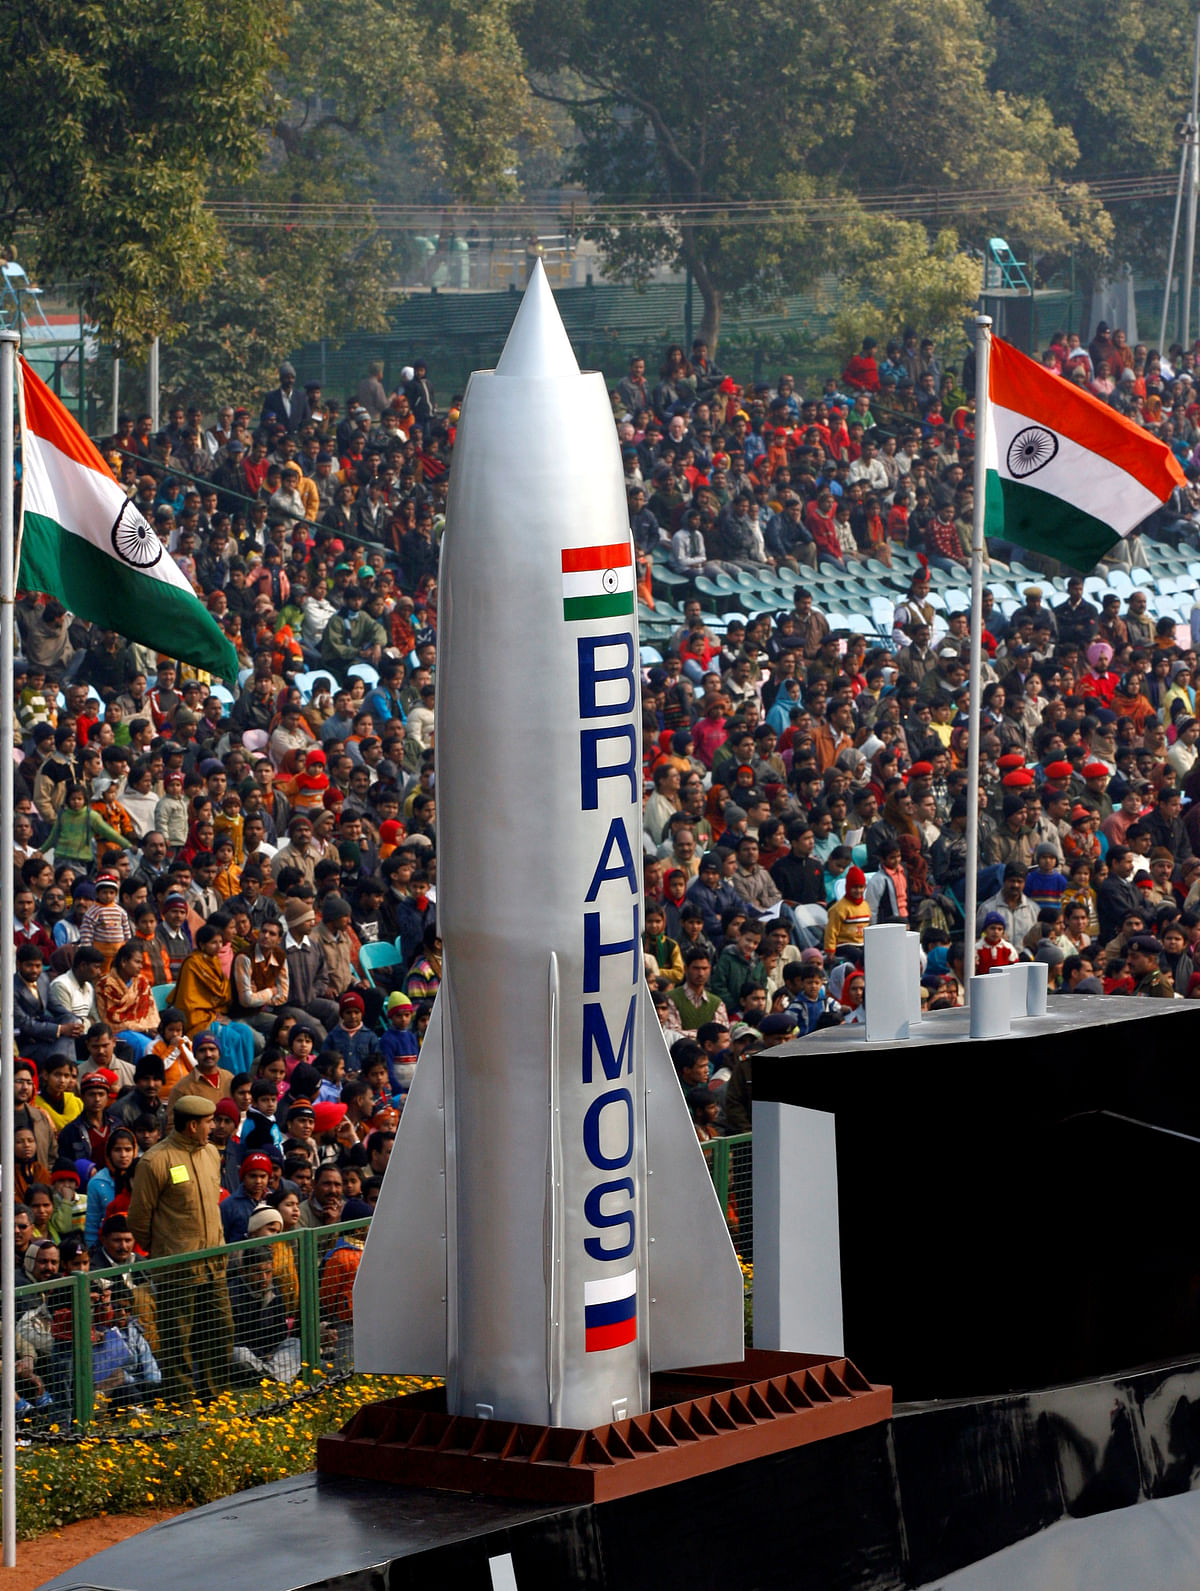 The supersonic BrahMos Cruise Missile has excellent dive attack capabilities and fits in the Indo-Sino border. (Photo: Reuters)